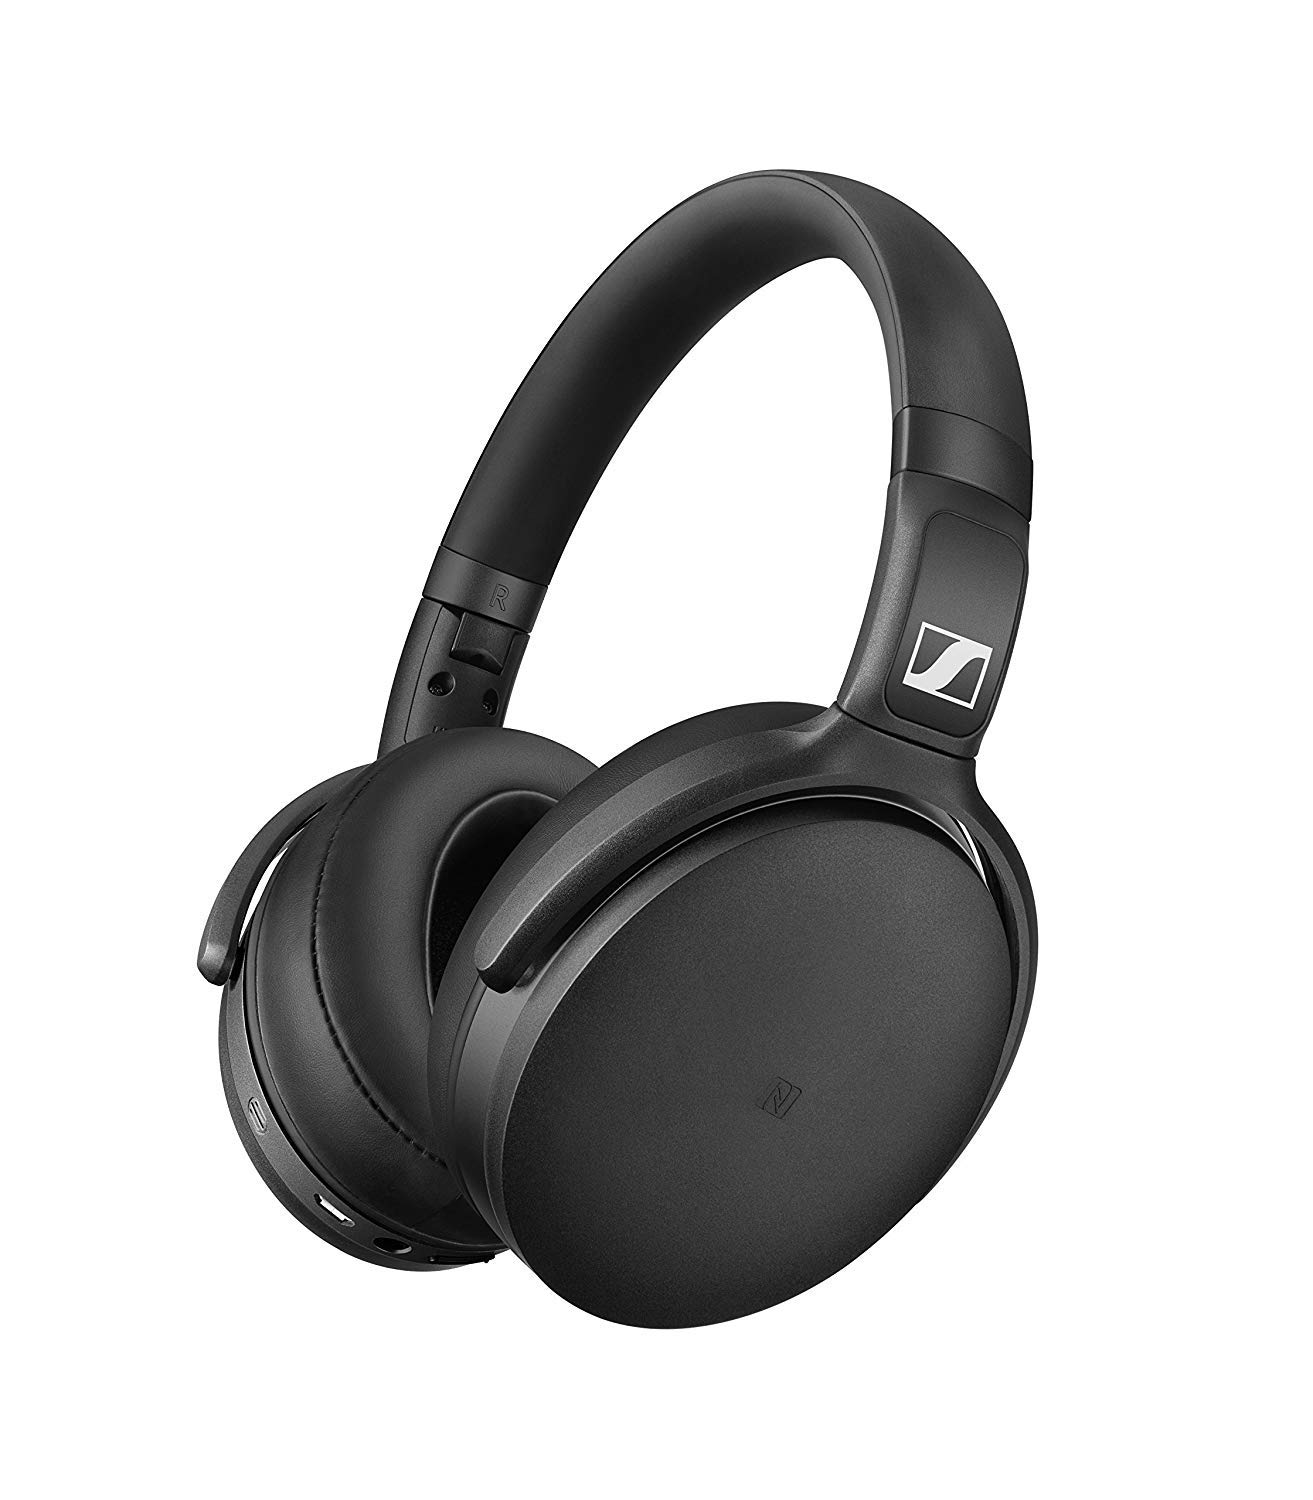 Sennheiser HD 4.50 SE BT NC Bluetooth Wireless Noise